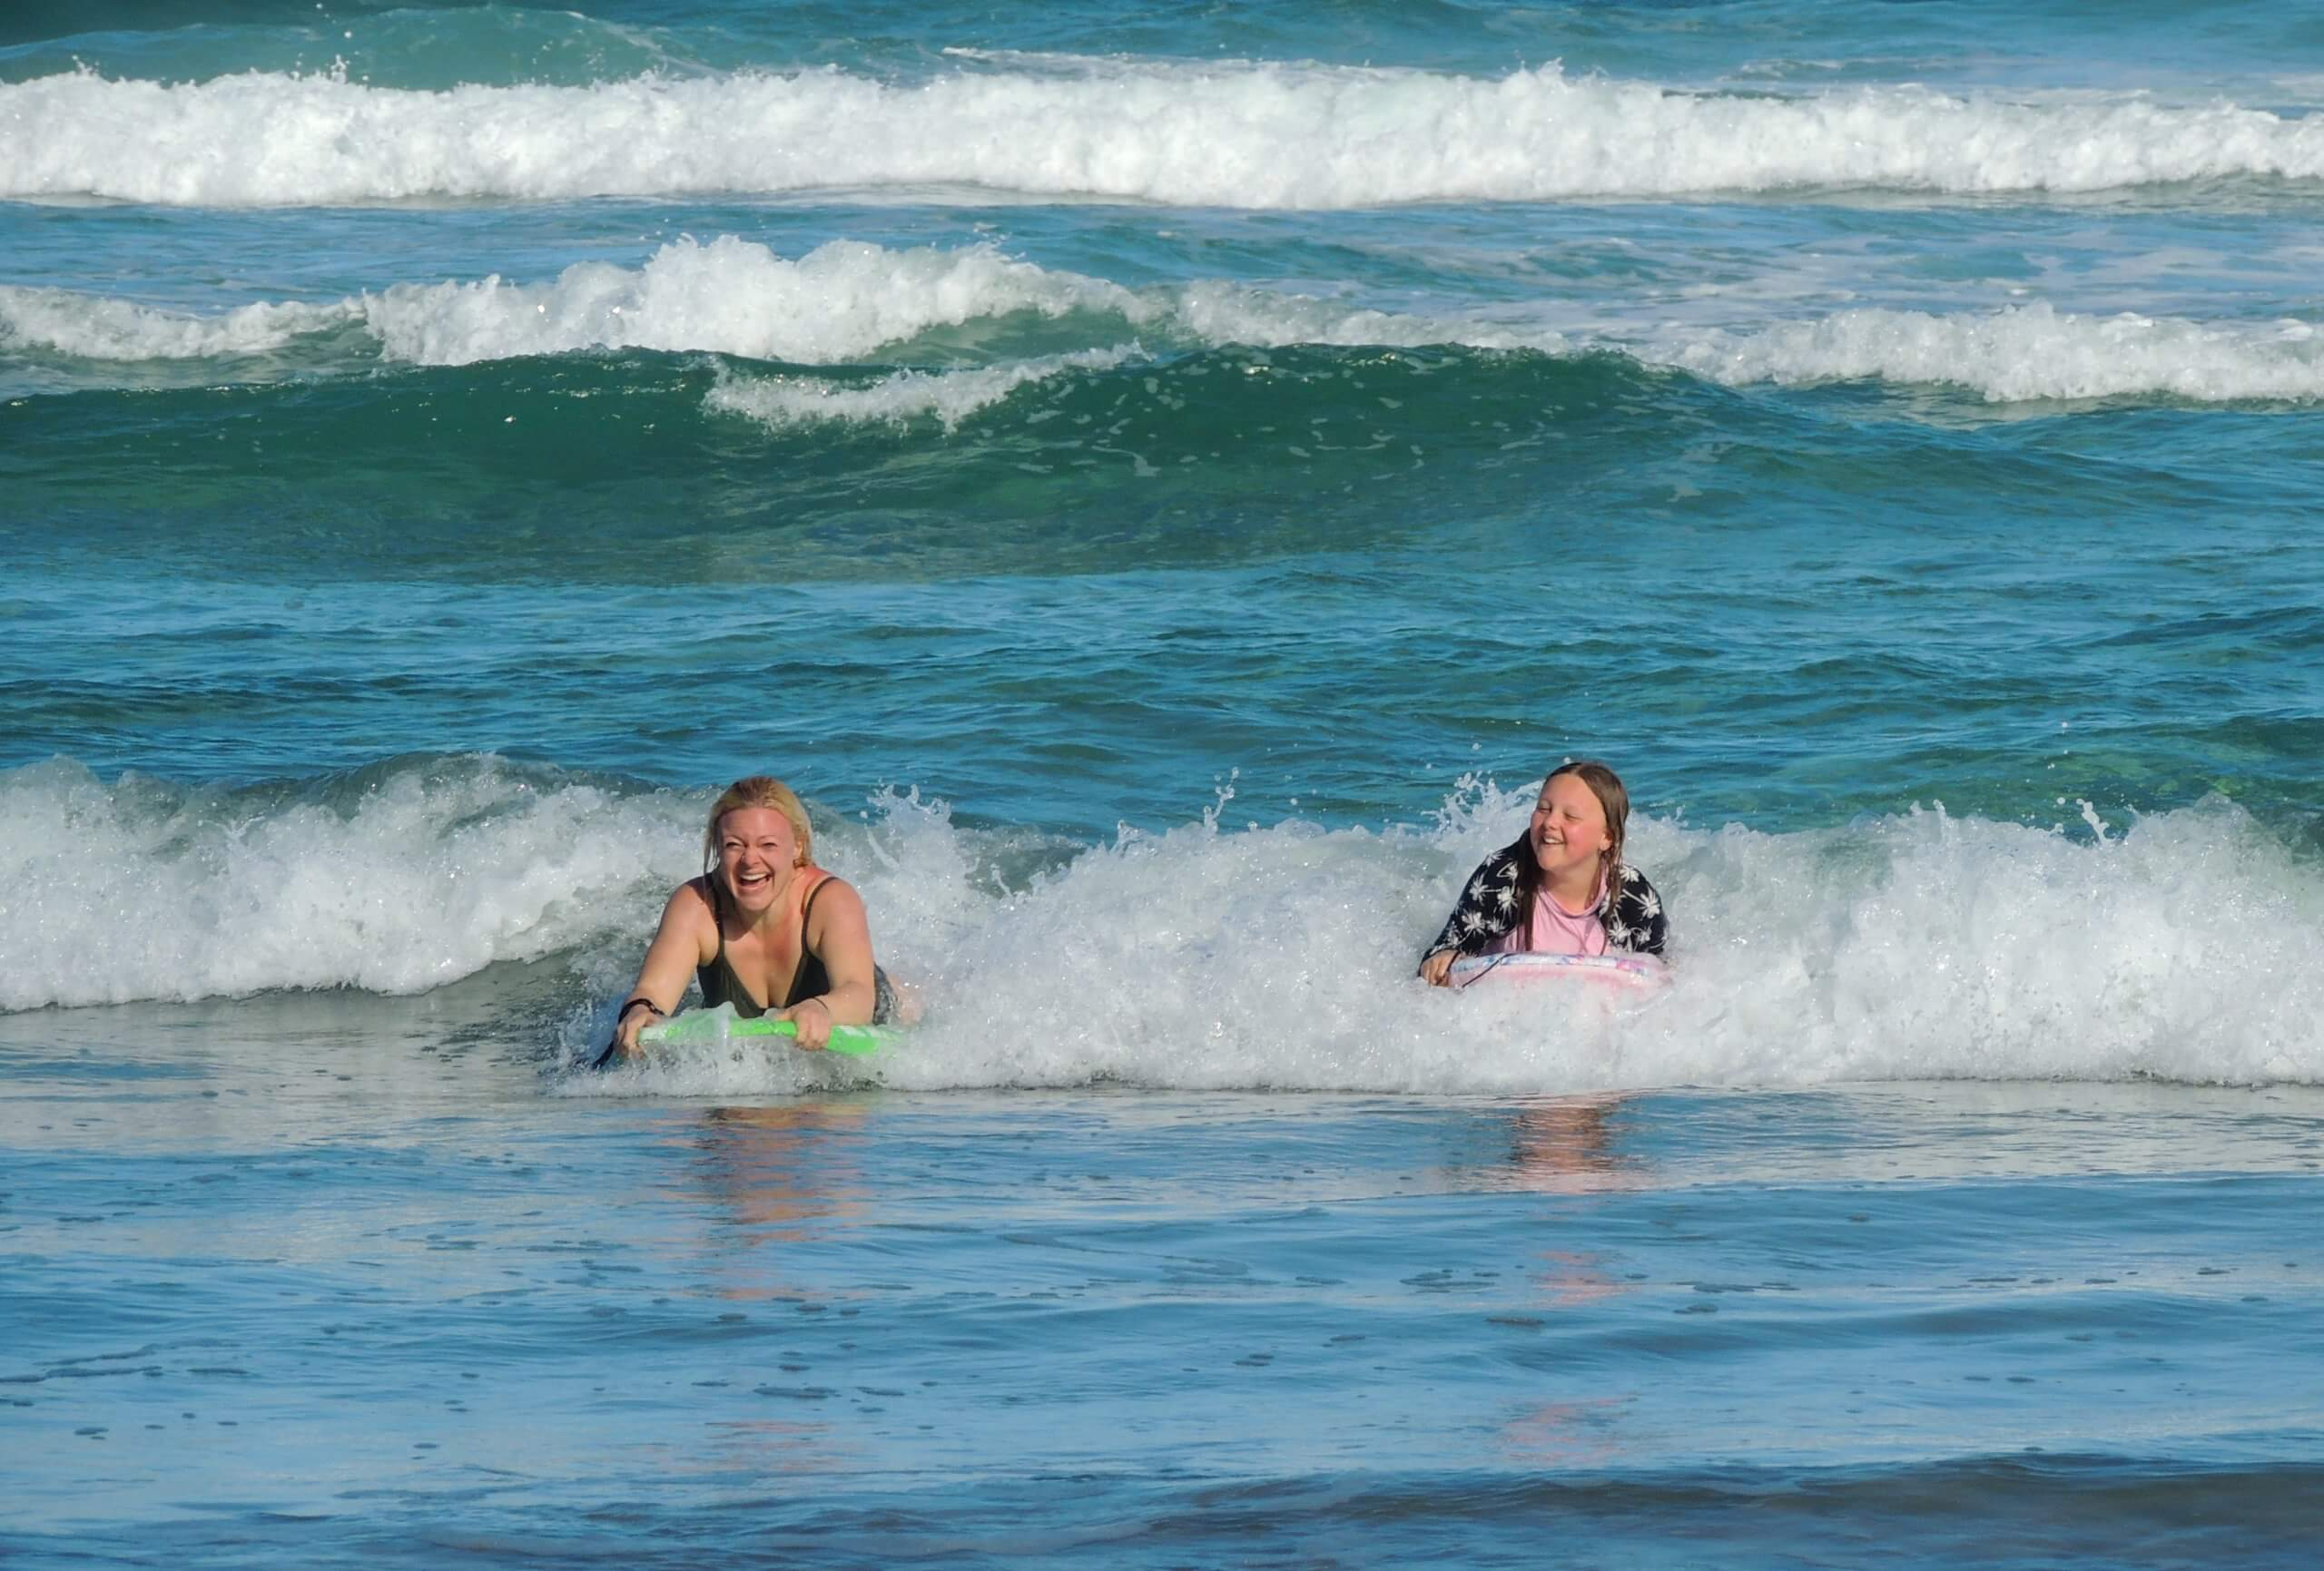 Mother and daughter body boarding